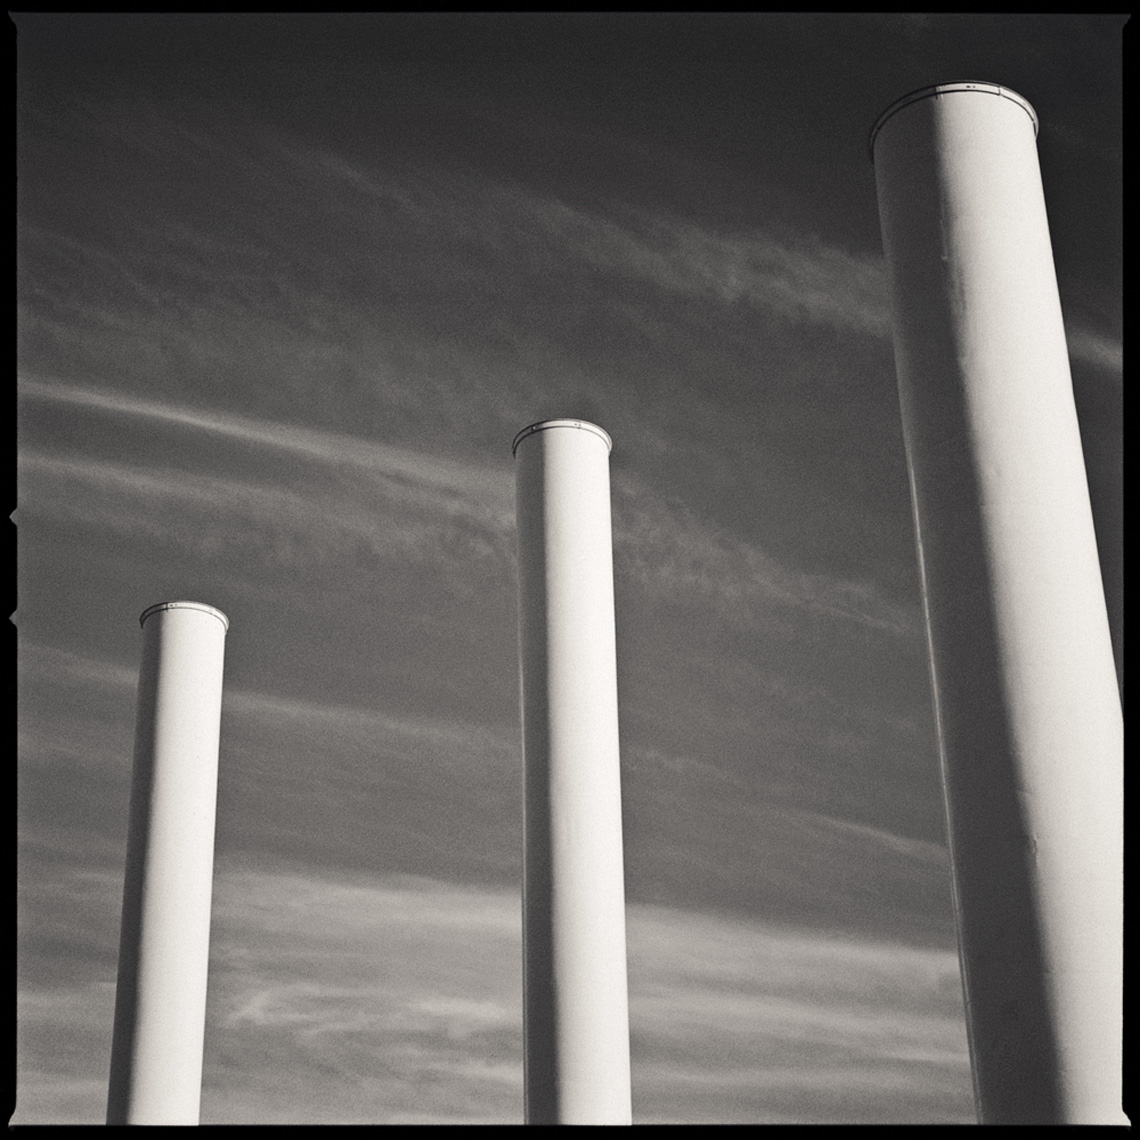 Sean Perry Photographs • The Sentinels, from the series Transitory